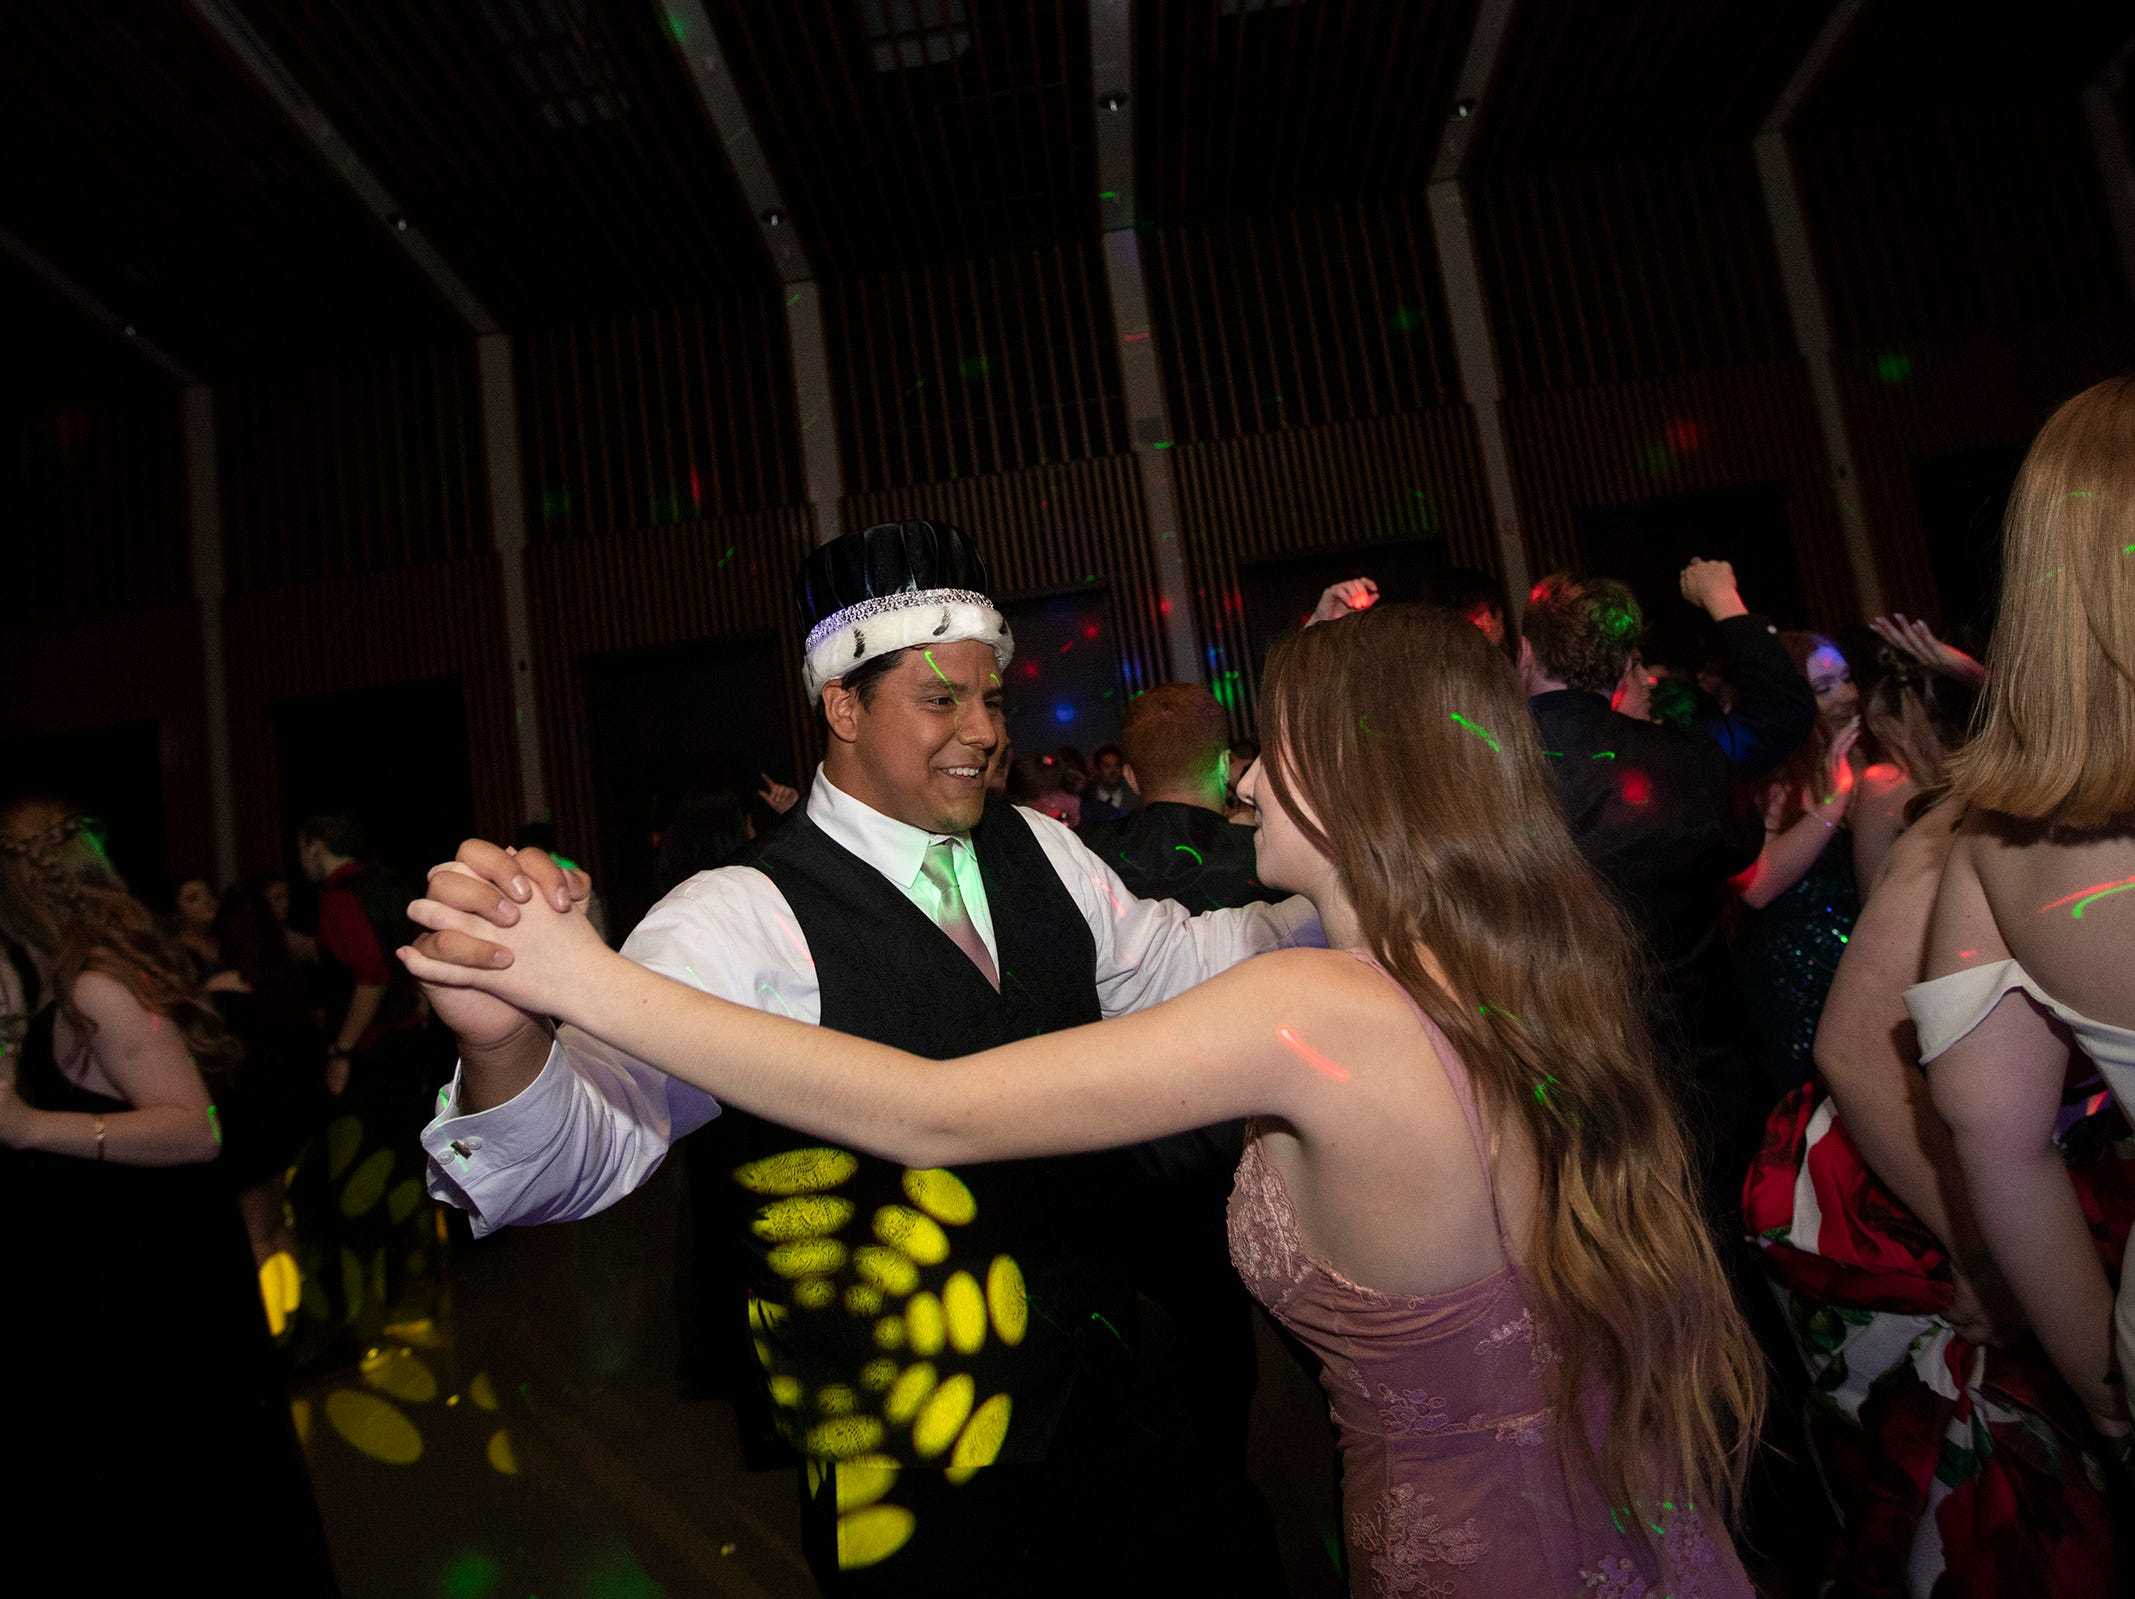 Prom king Thomas Rocha and Meredith Oace dance during the Dallas High School prom at the Dallas Armory on Saturday, May 12.